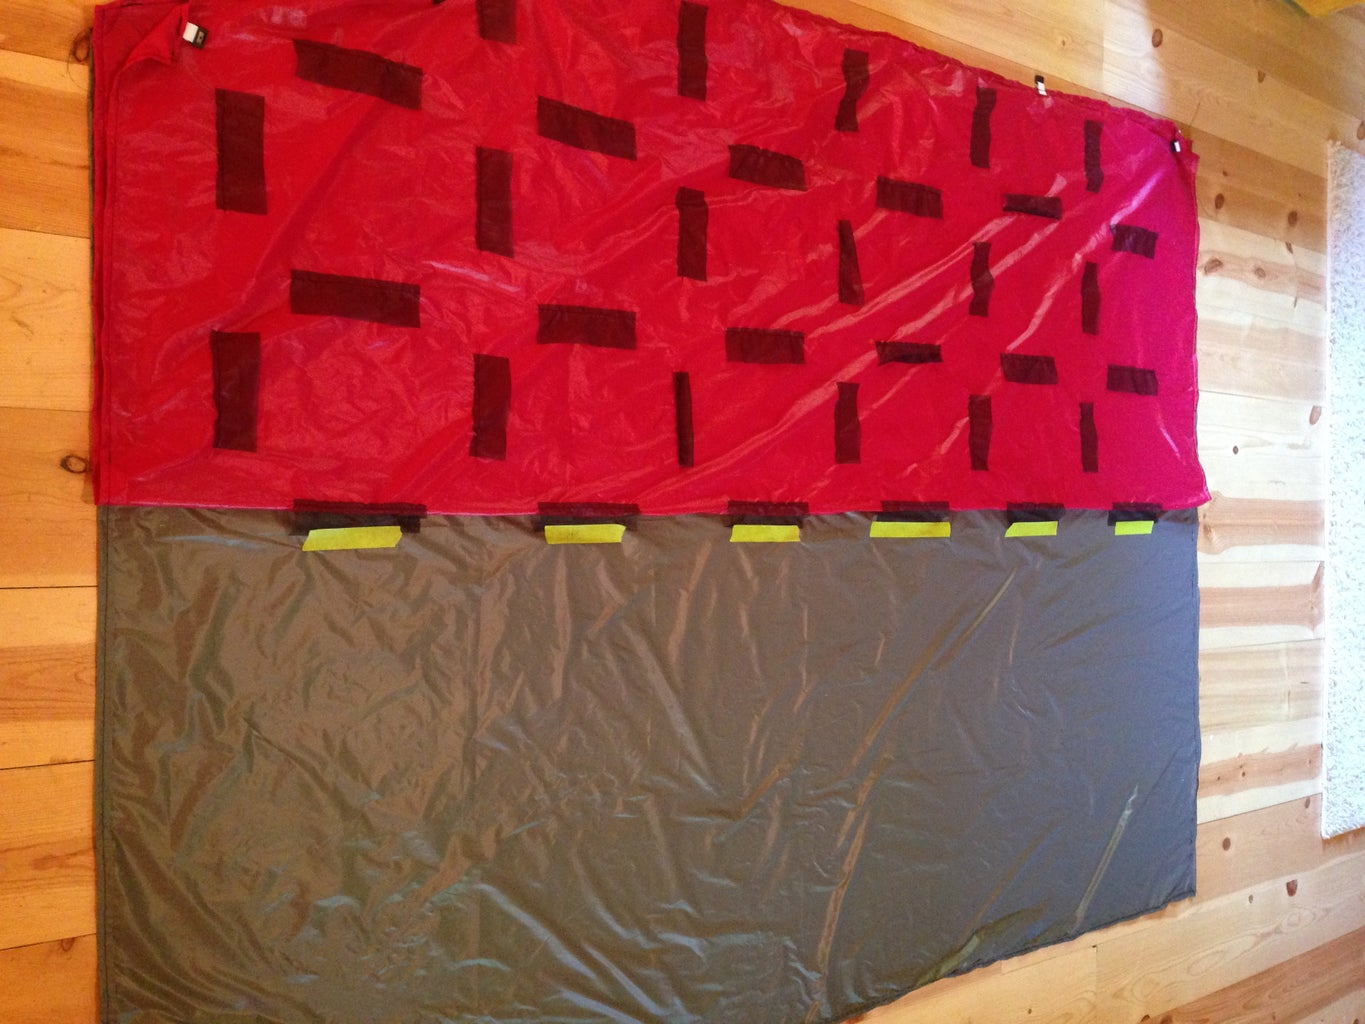 Sew the Top Quilt Baffles to the Bottom